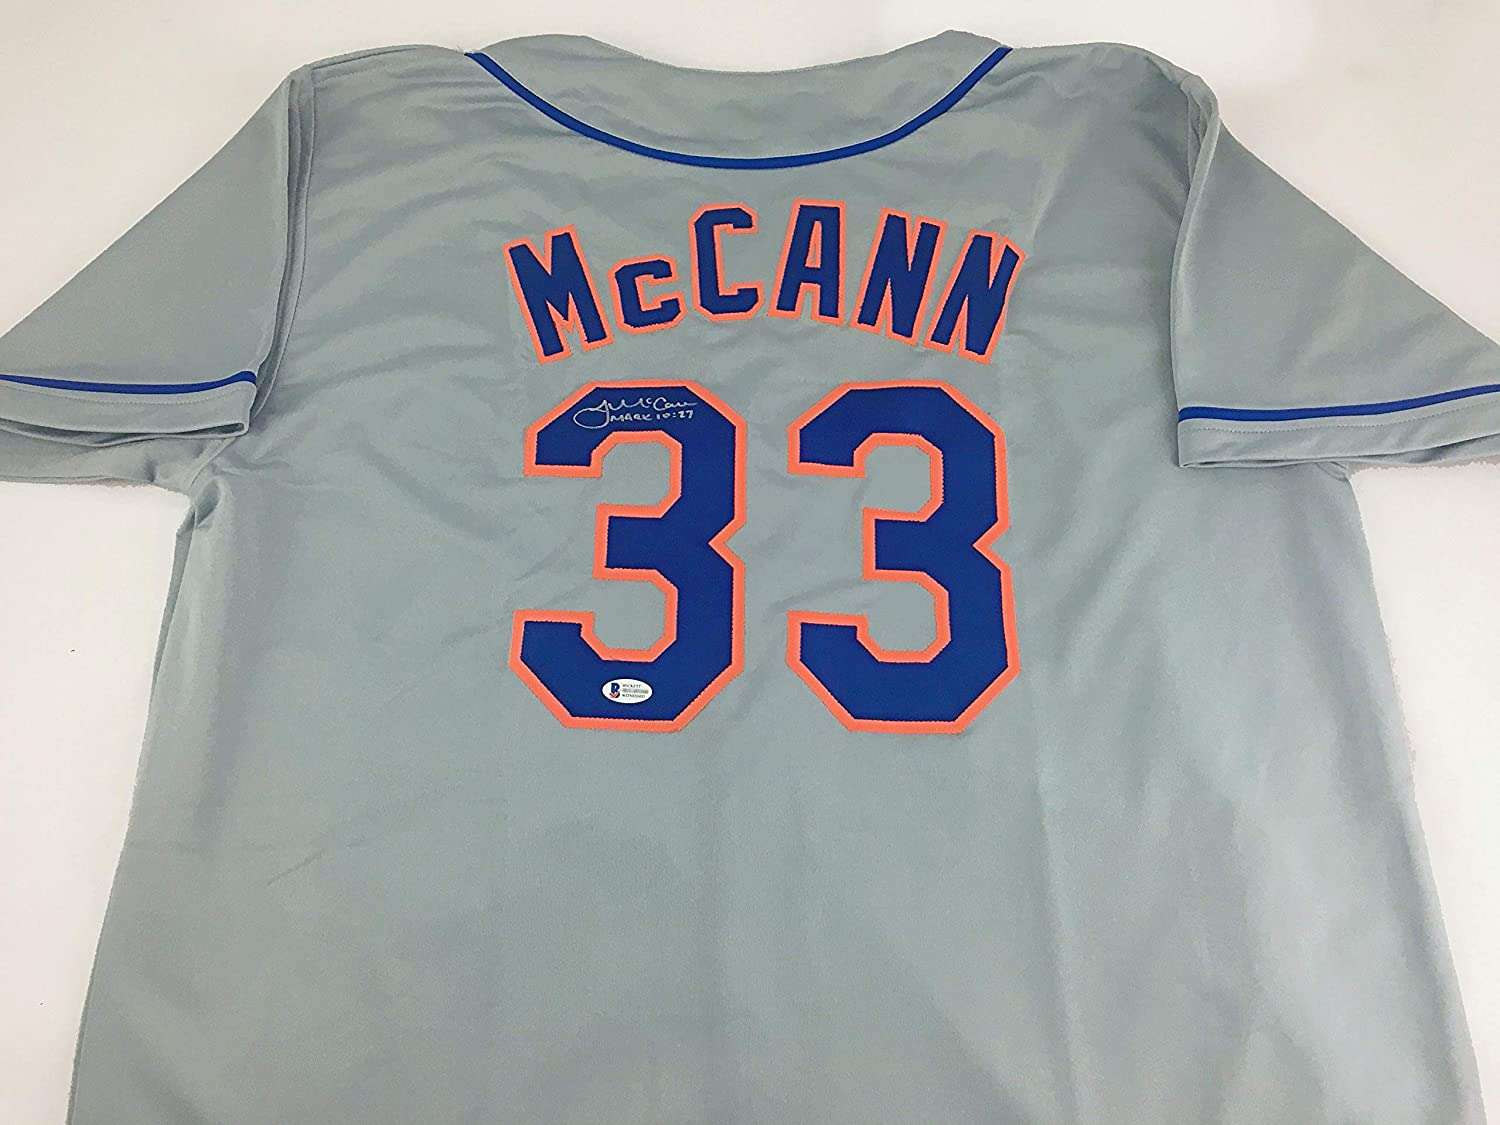 James Large special price McCann Signed Autographed Gray Becket Jersey Baseball Max 65% OFF with